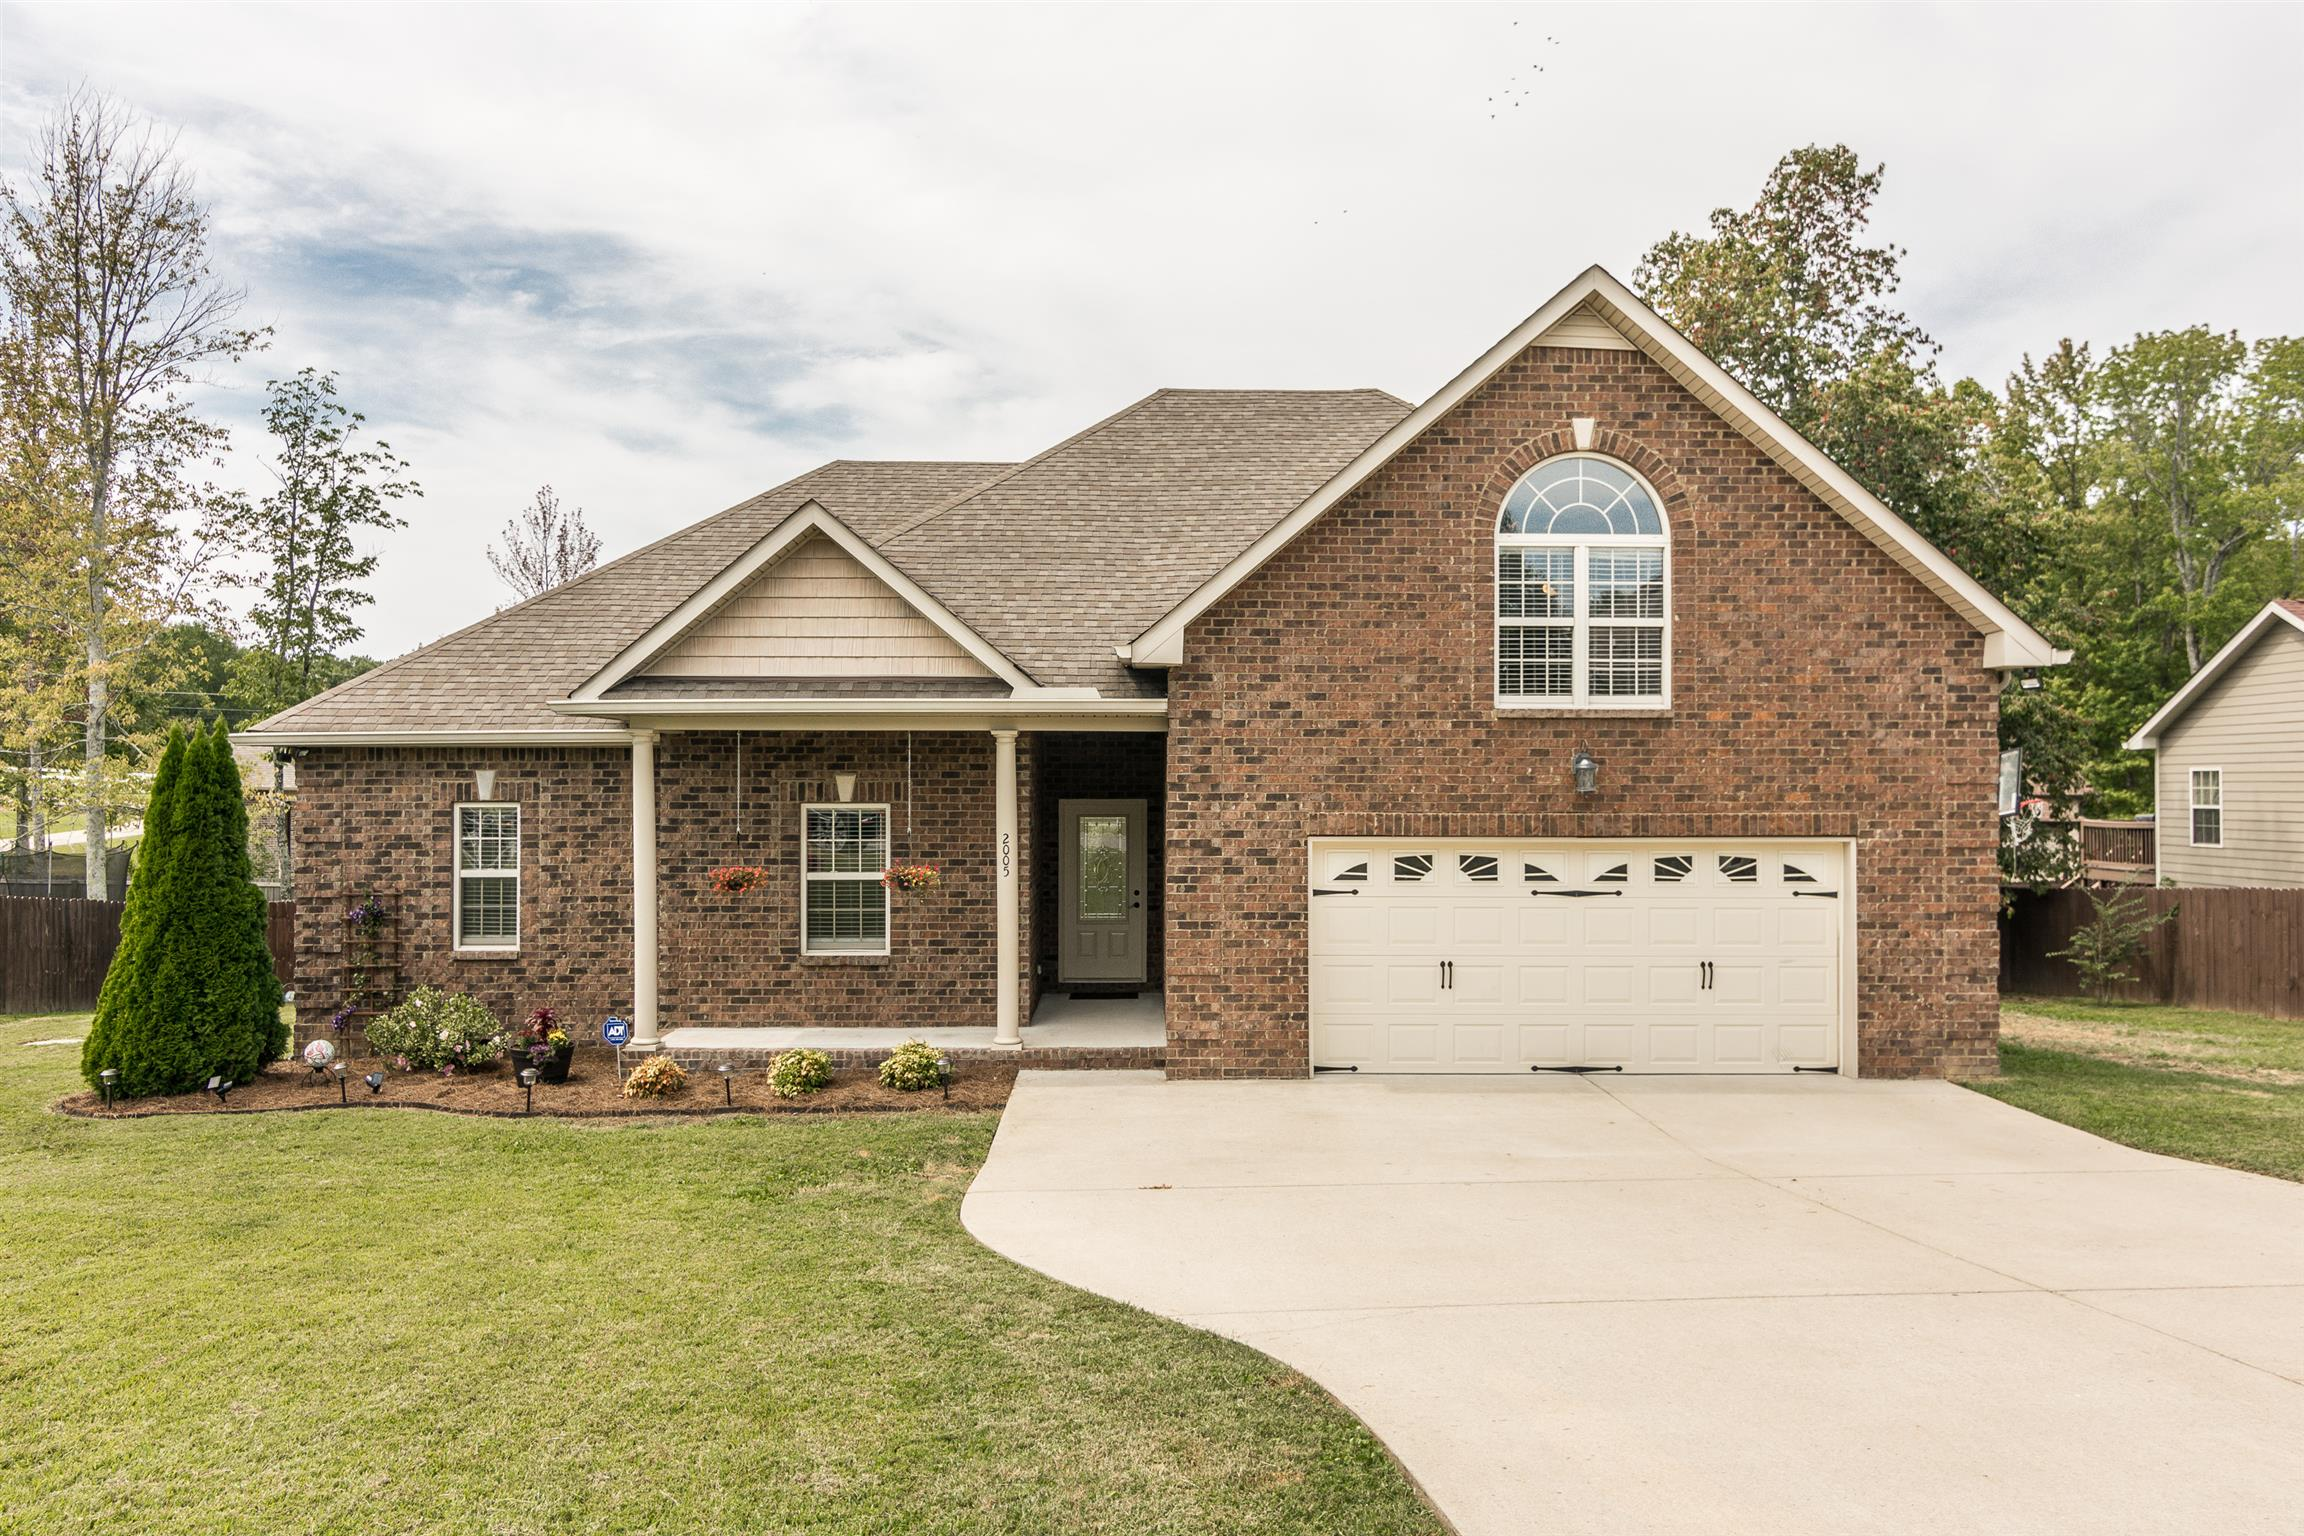 $324,900 - 3Br/2Ba -  for Sale in Dogwood Trace, Greenbrier